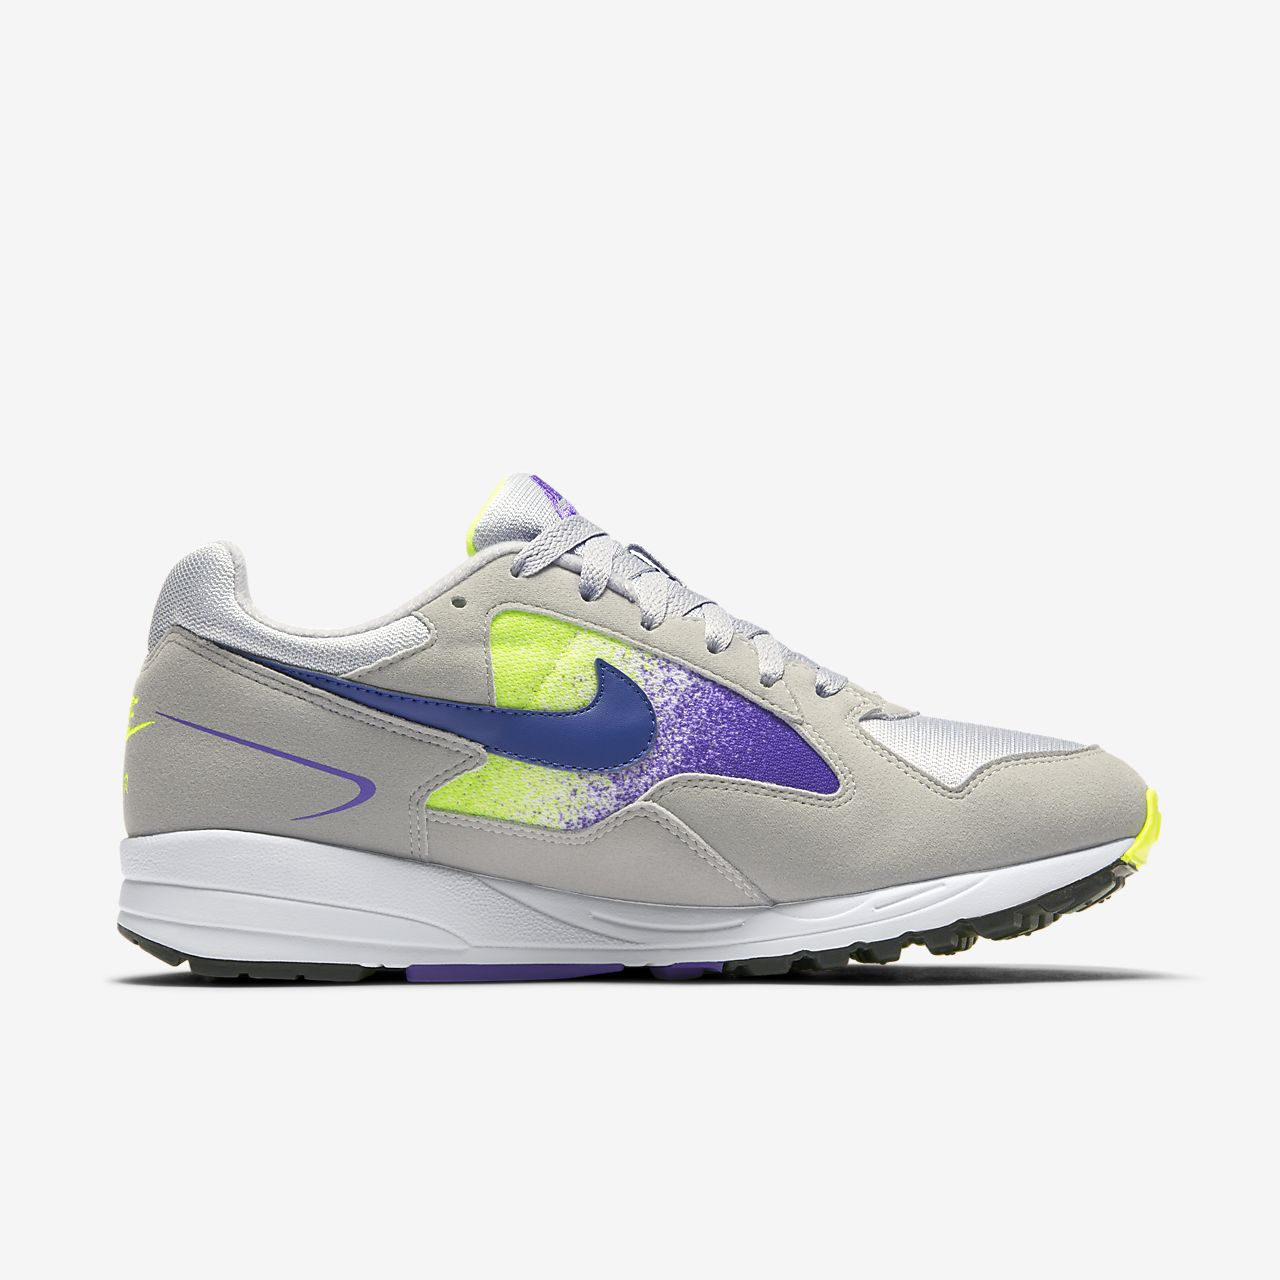 28b5be369f5346 Nike Air Skylon II Men s Shoe. Nike.com GB